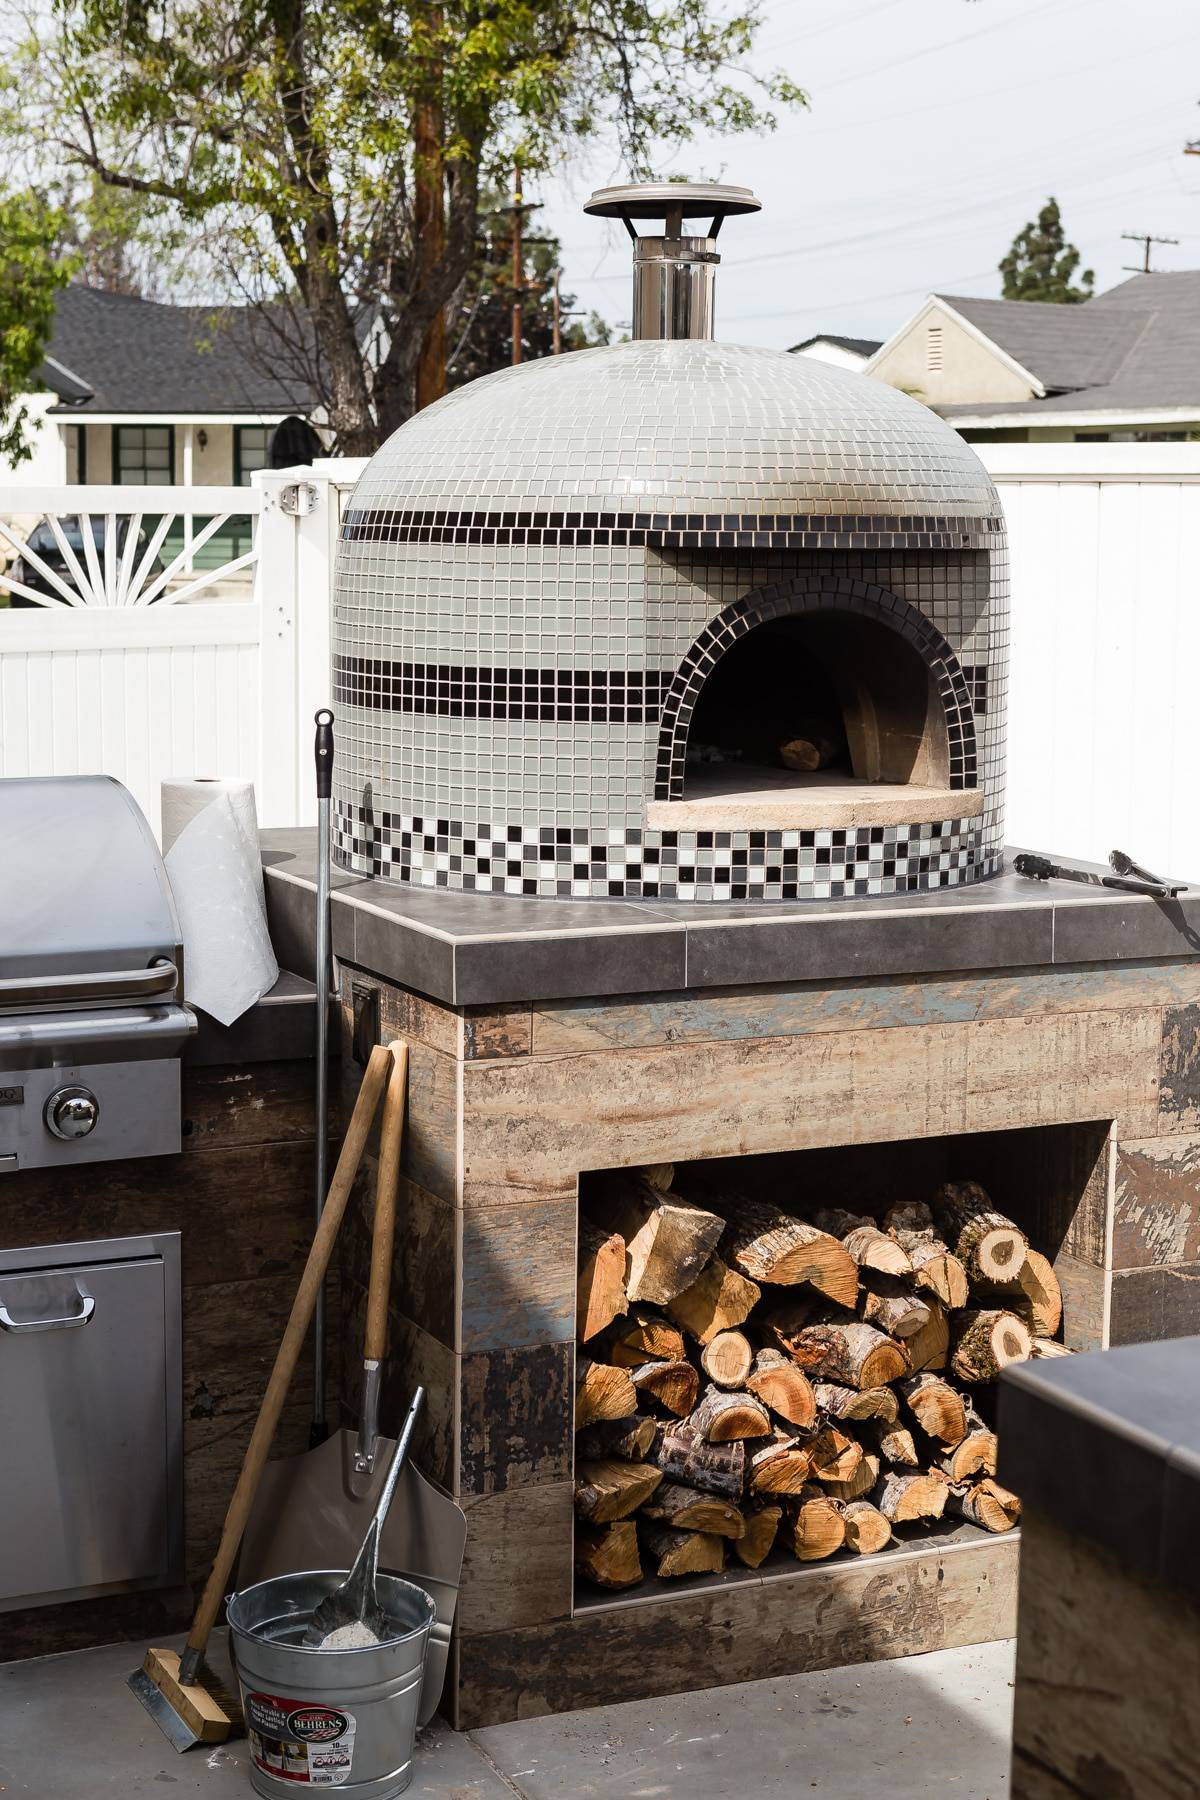 a traditional wood fired pizza oven